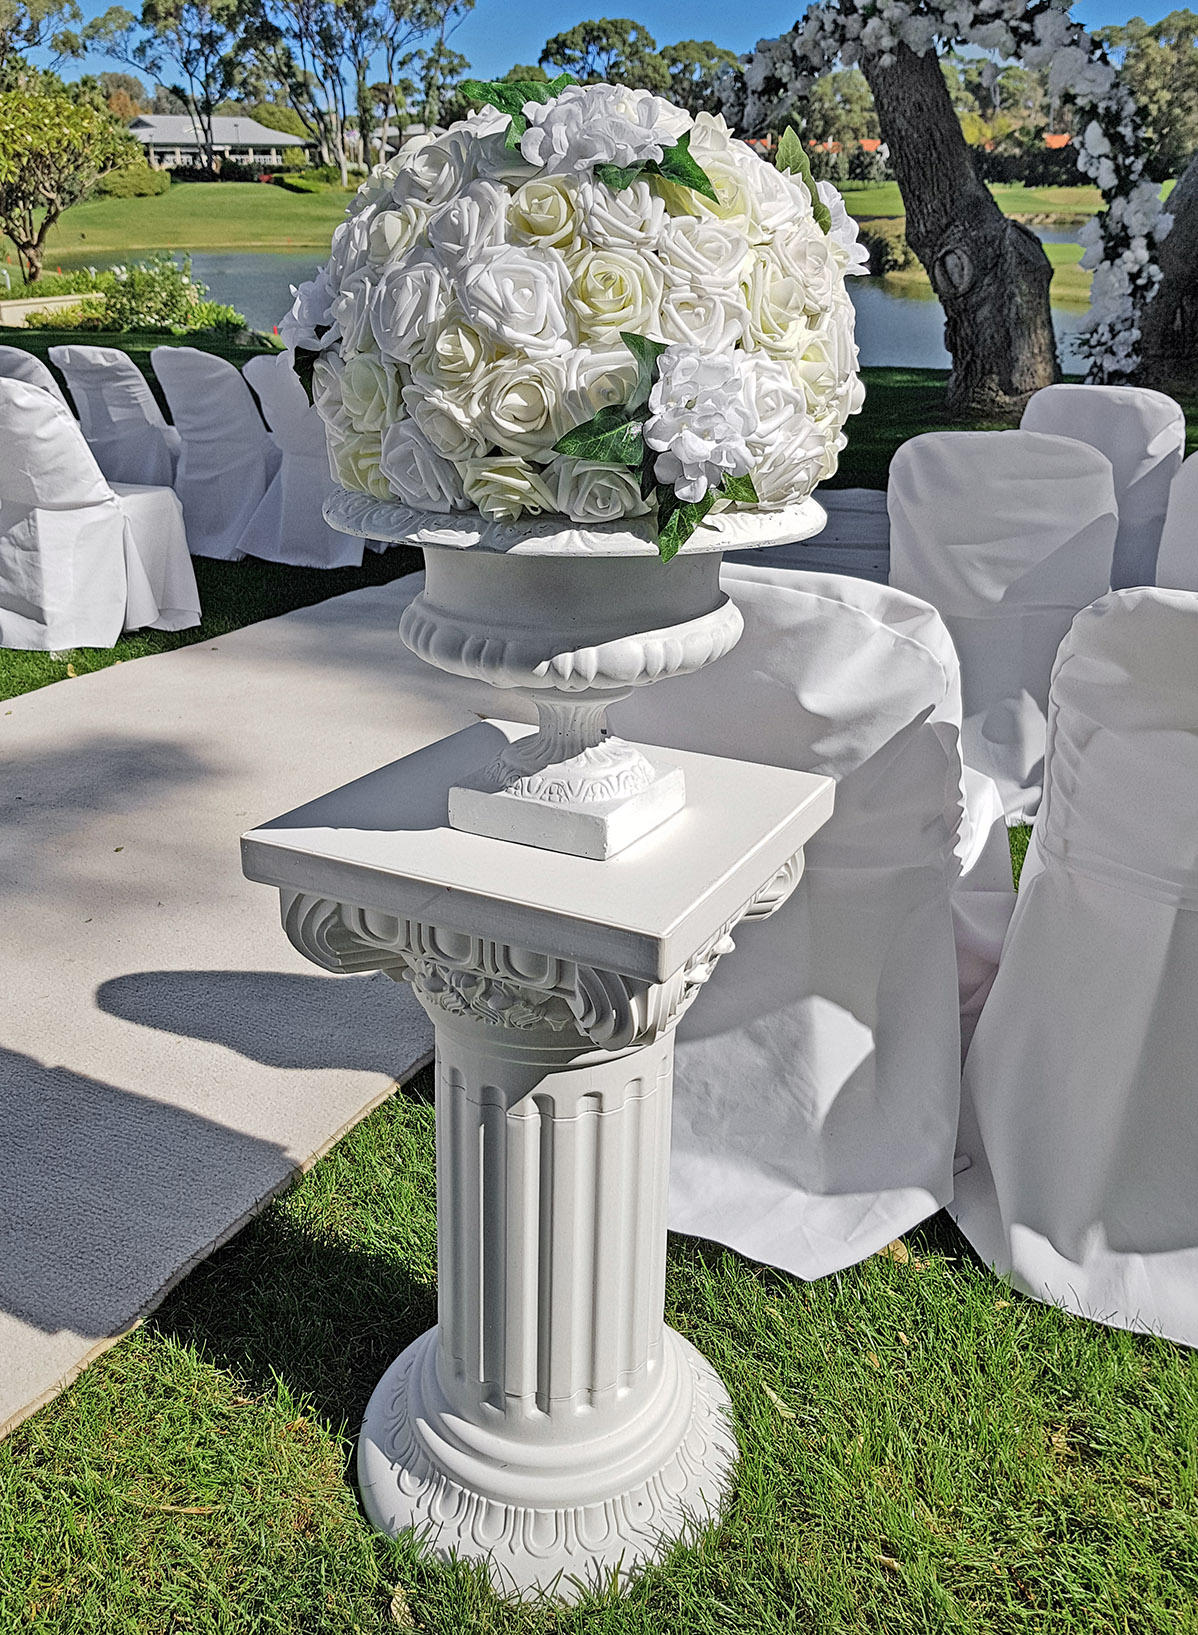 Topiarys and Pedestals $25.00